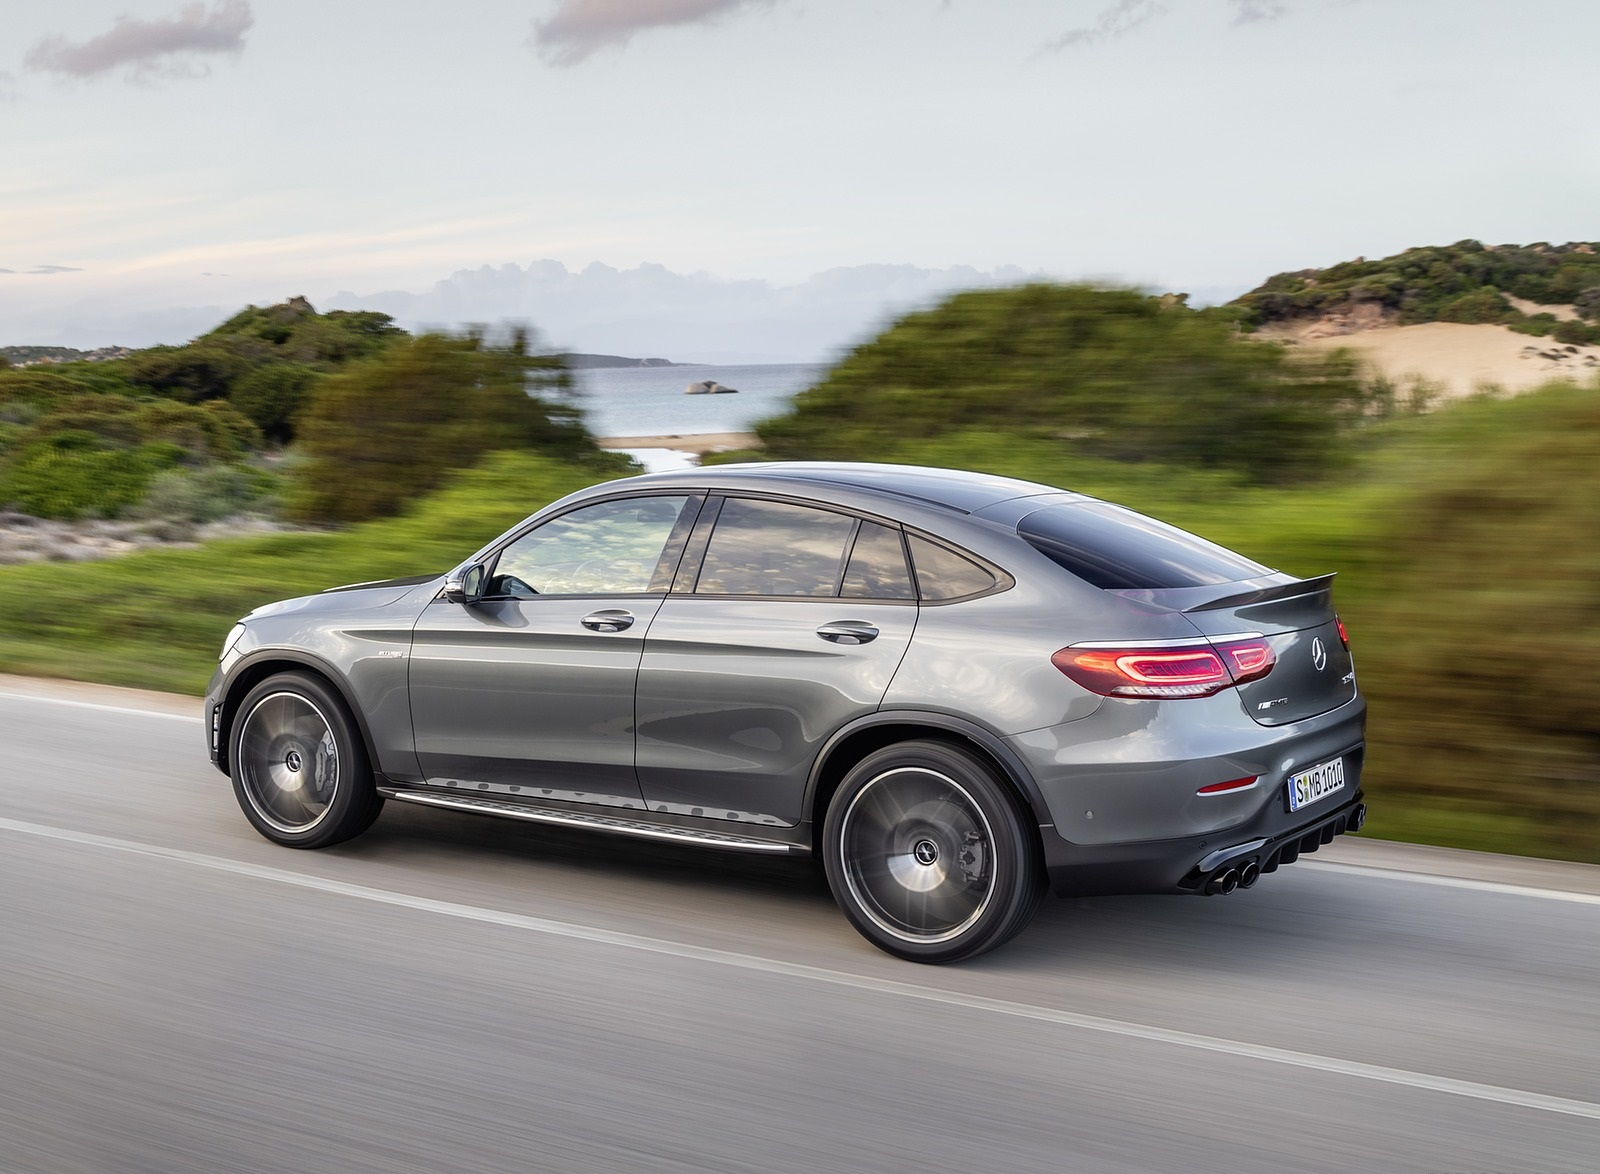 2020 Mercedes-AMG GLC 43 4MATIC Coupe Rear Three-Quarter Wallpapers (8)